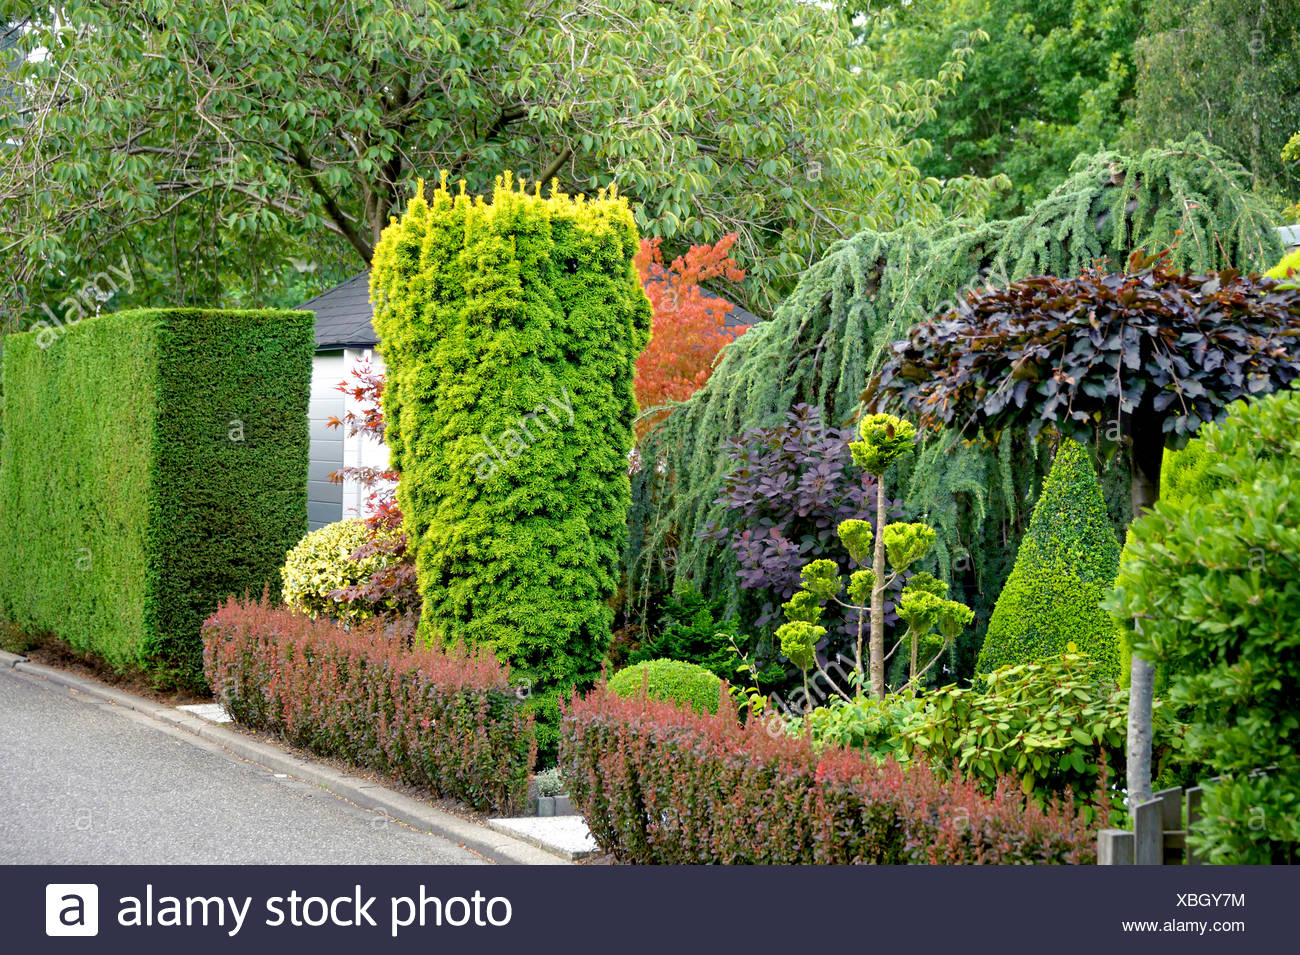 taxus baccata yew hedge stock photos taxus baccata yew. Black Bedroom Furniture Sets. Home Design Ideas